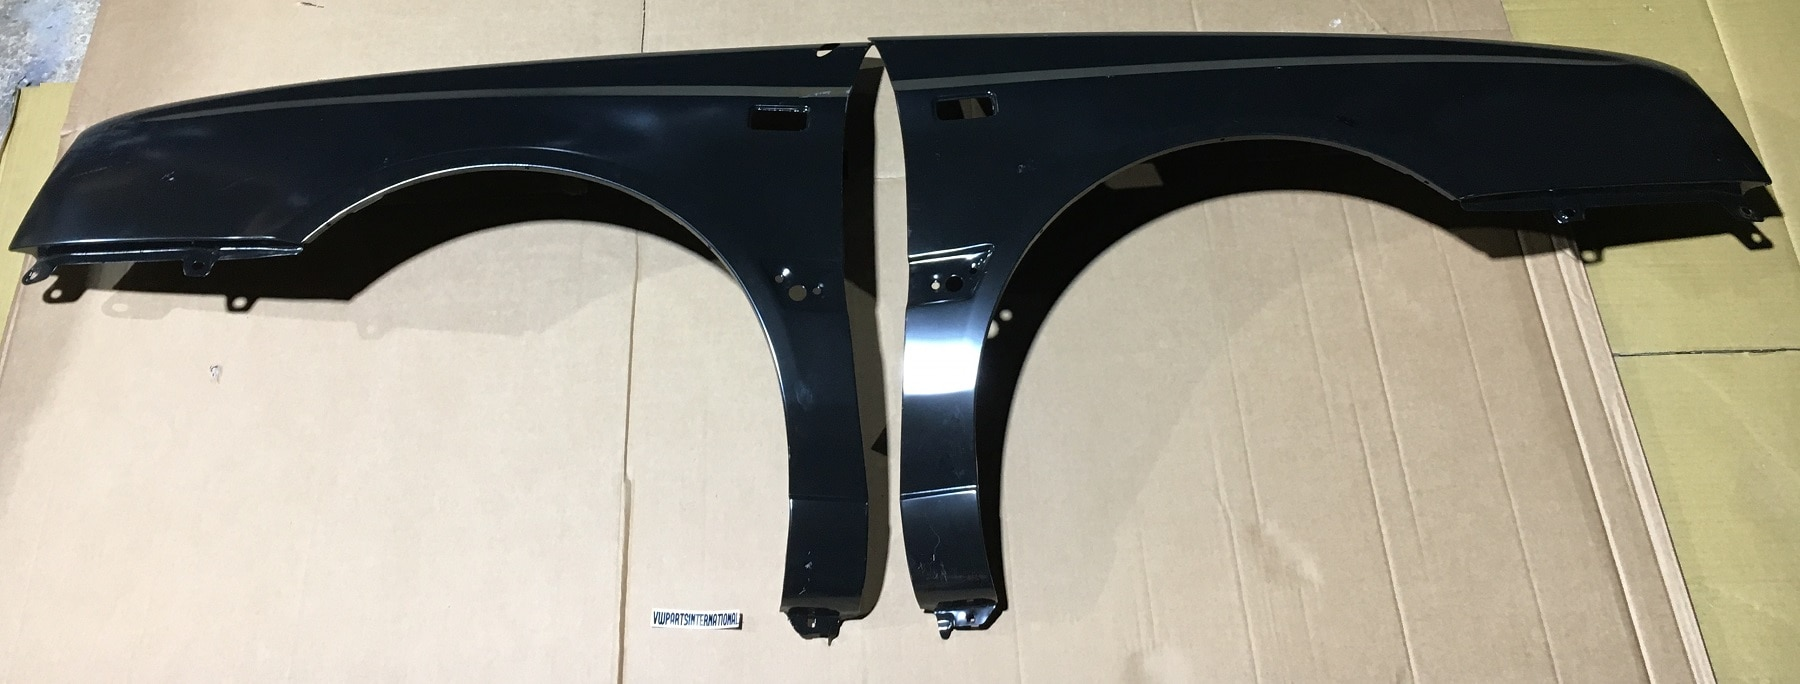 VW Golf MK3 VR6 GTI TDI Wing Fenders Left & Right Rectangle Indicator Holes + Aerial Hole New High Quality Parts